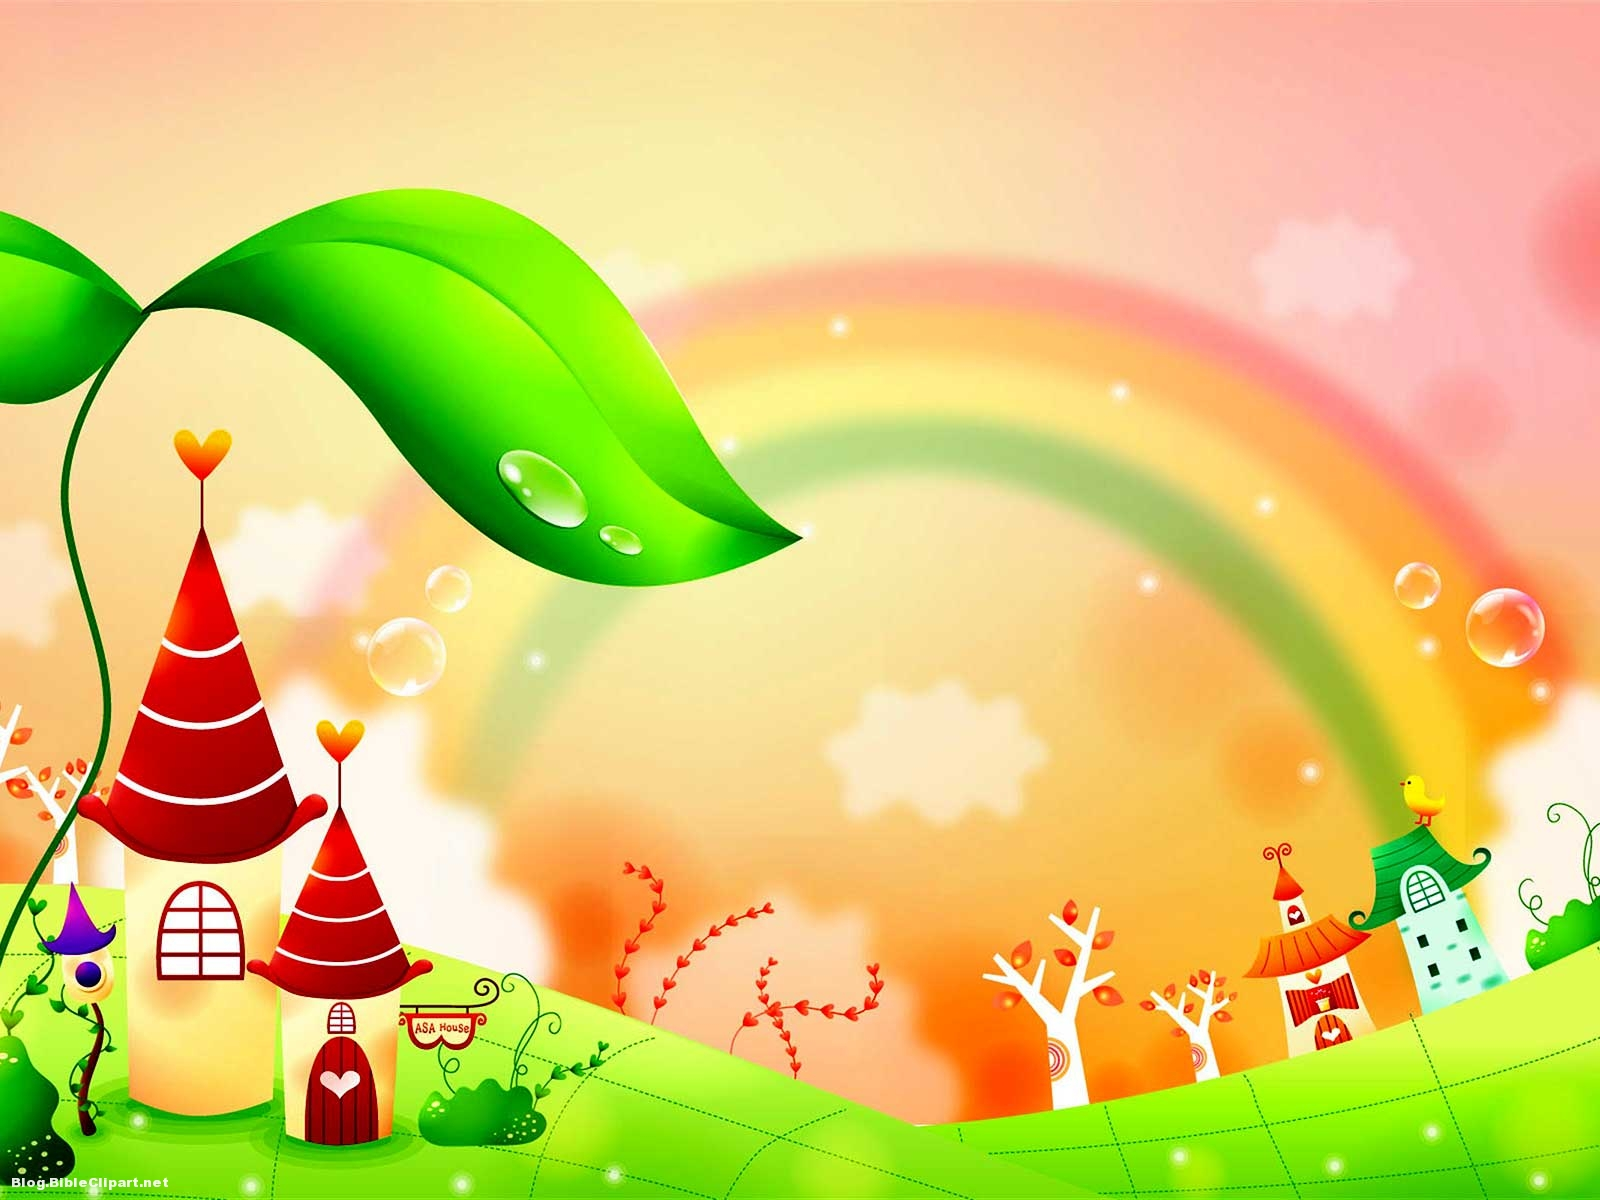 Fairy tale rainbow children background blog bibleclipart fairy tale rainbow children background pronofoot35fo Image collections